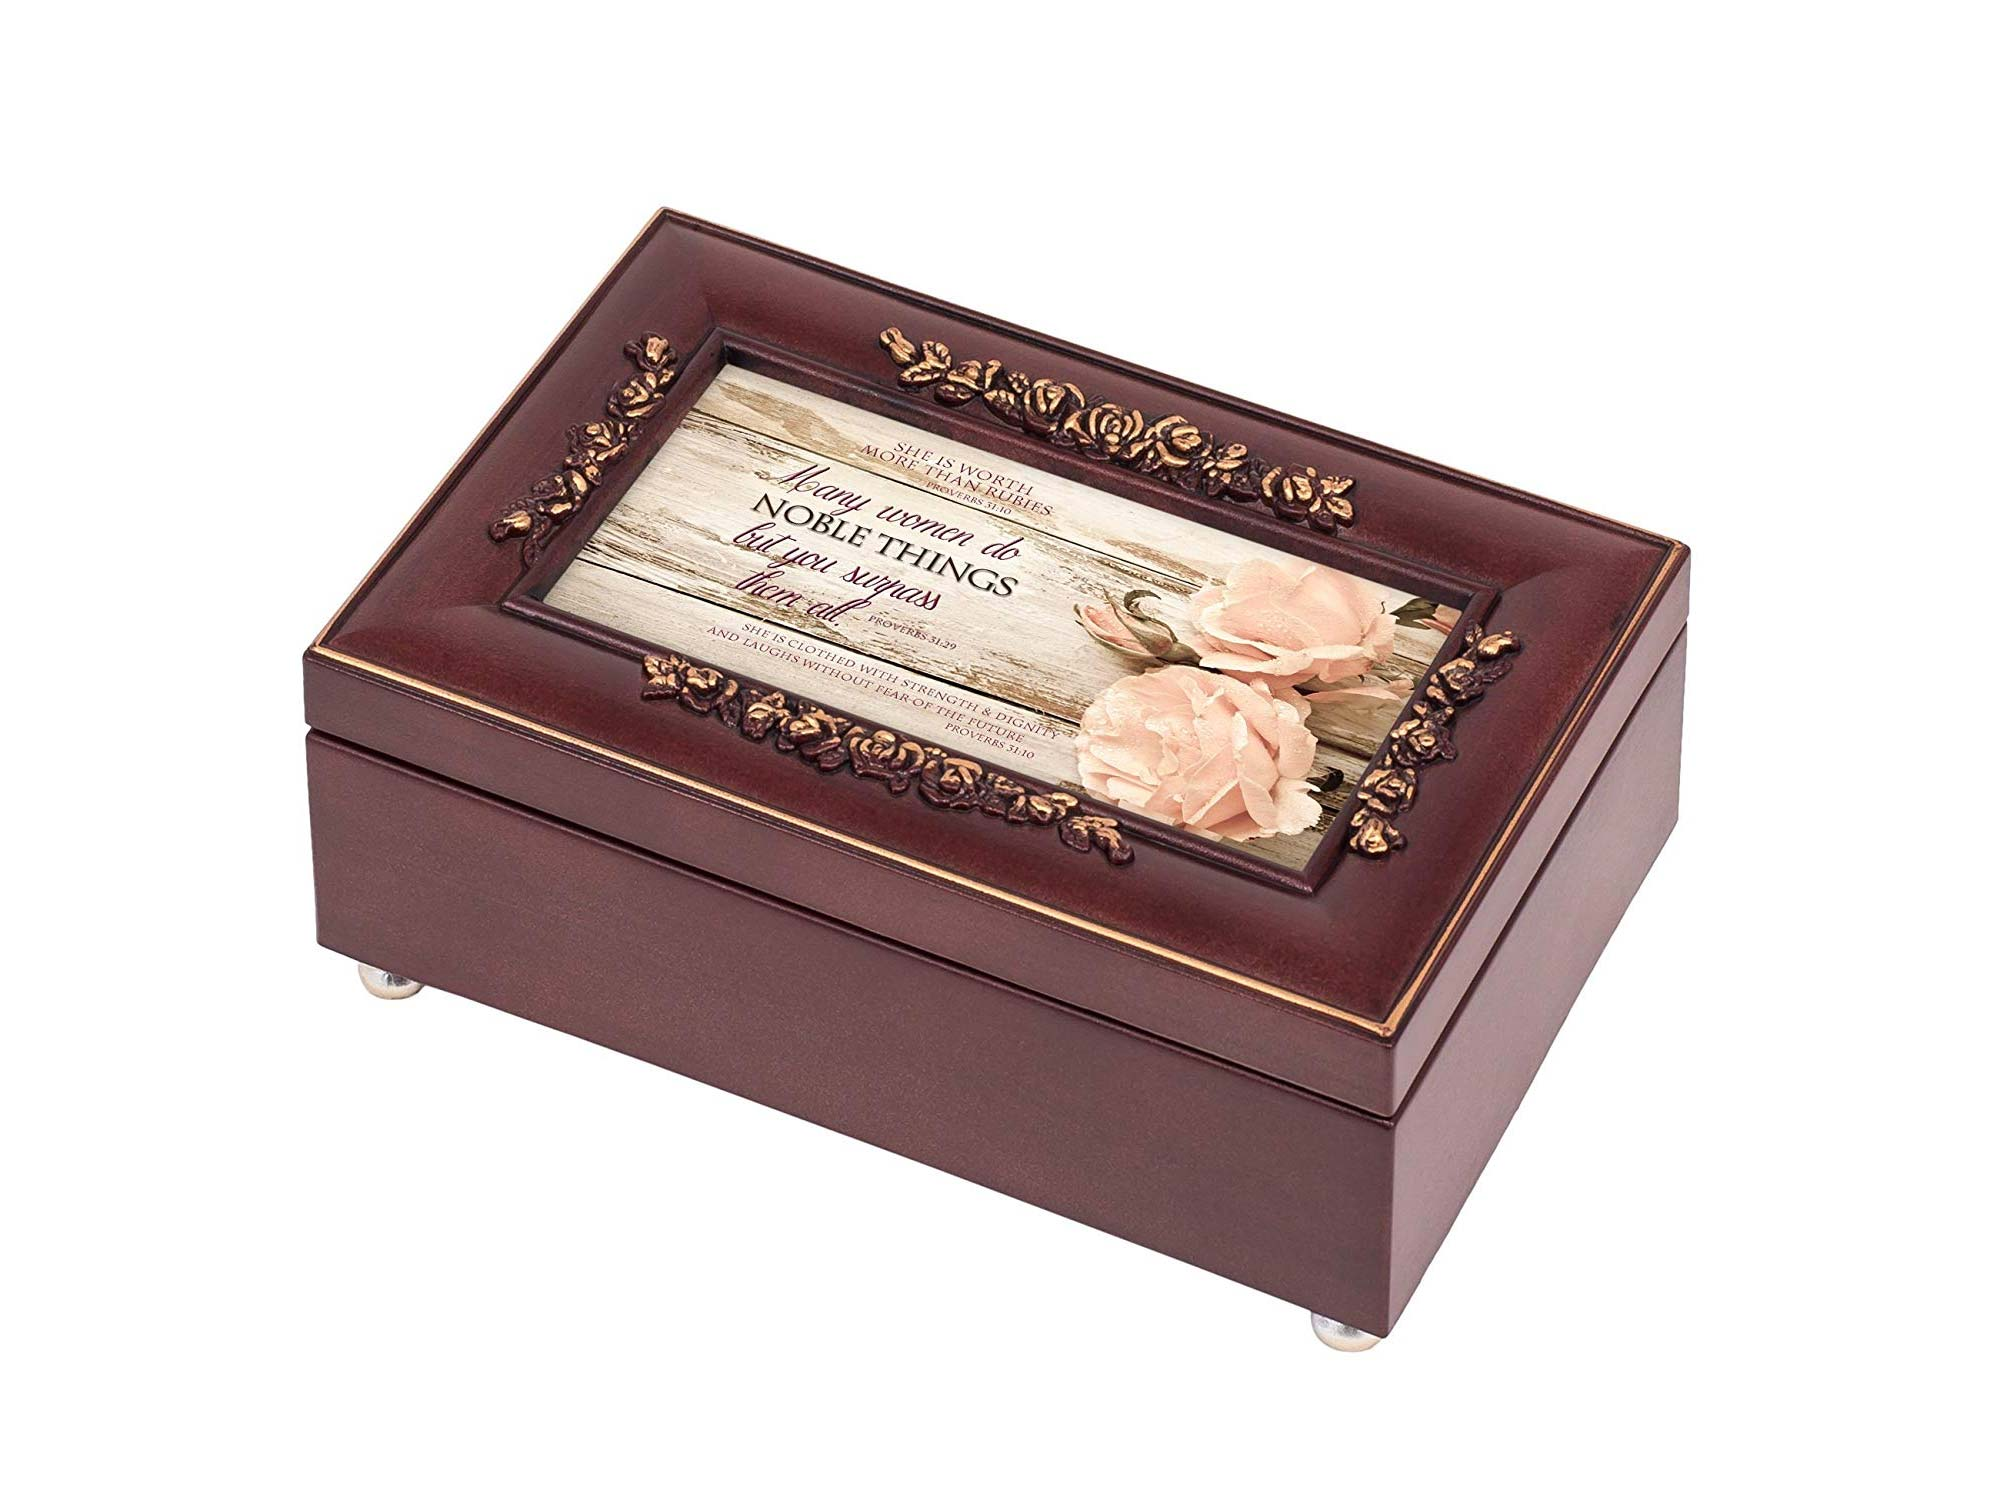 Proverbs 31 Woman Distressed Rose Wood Finish Jewelry Music Box